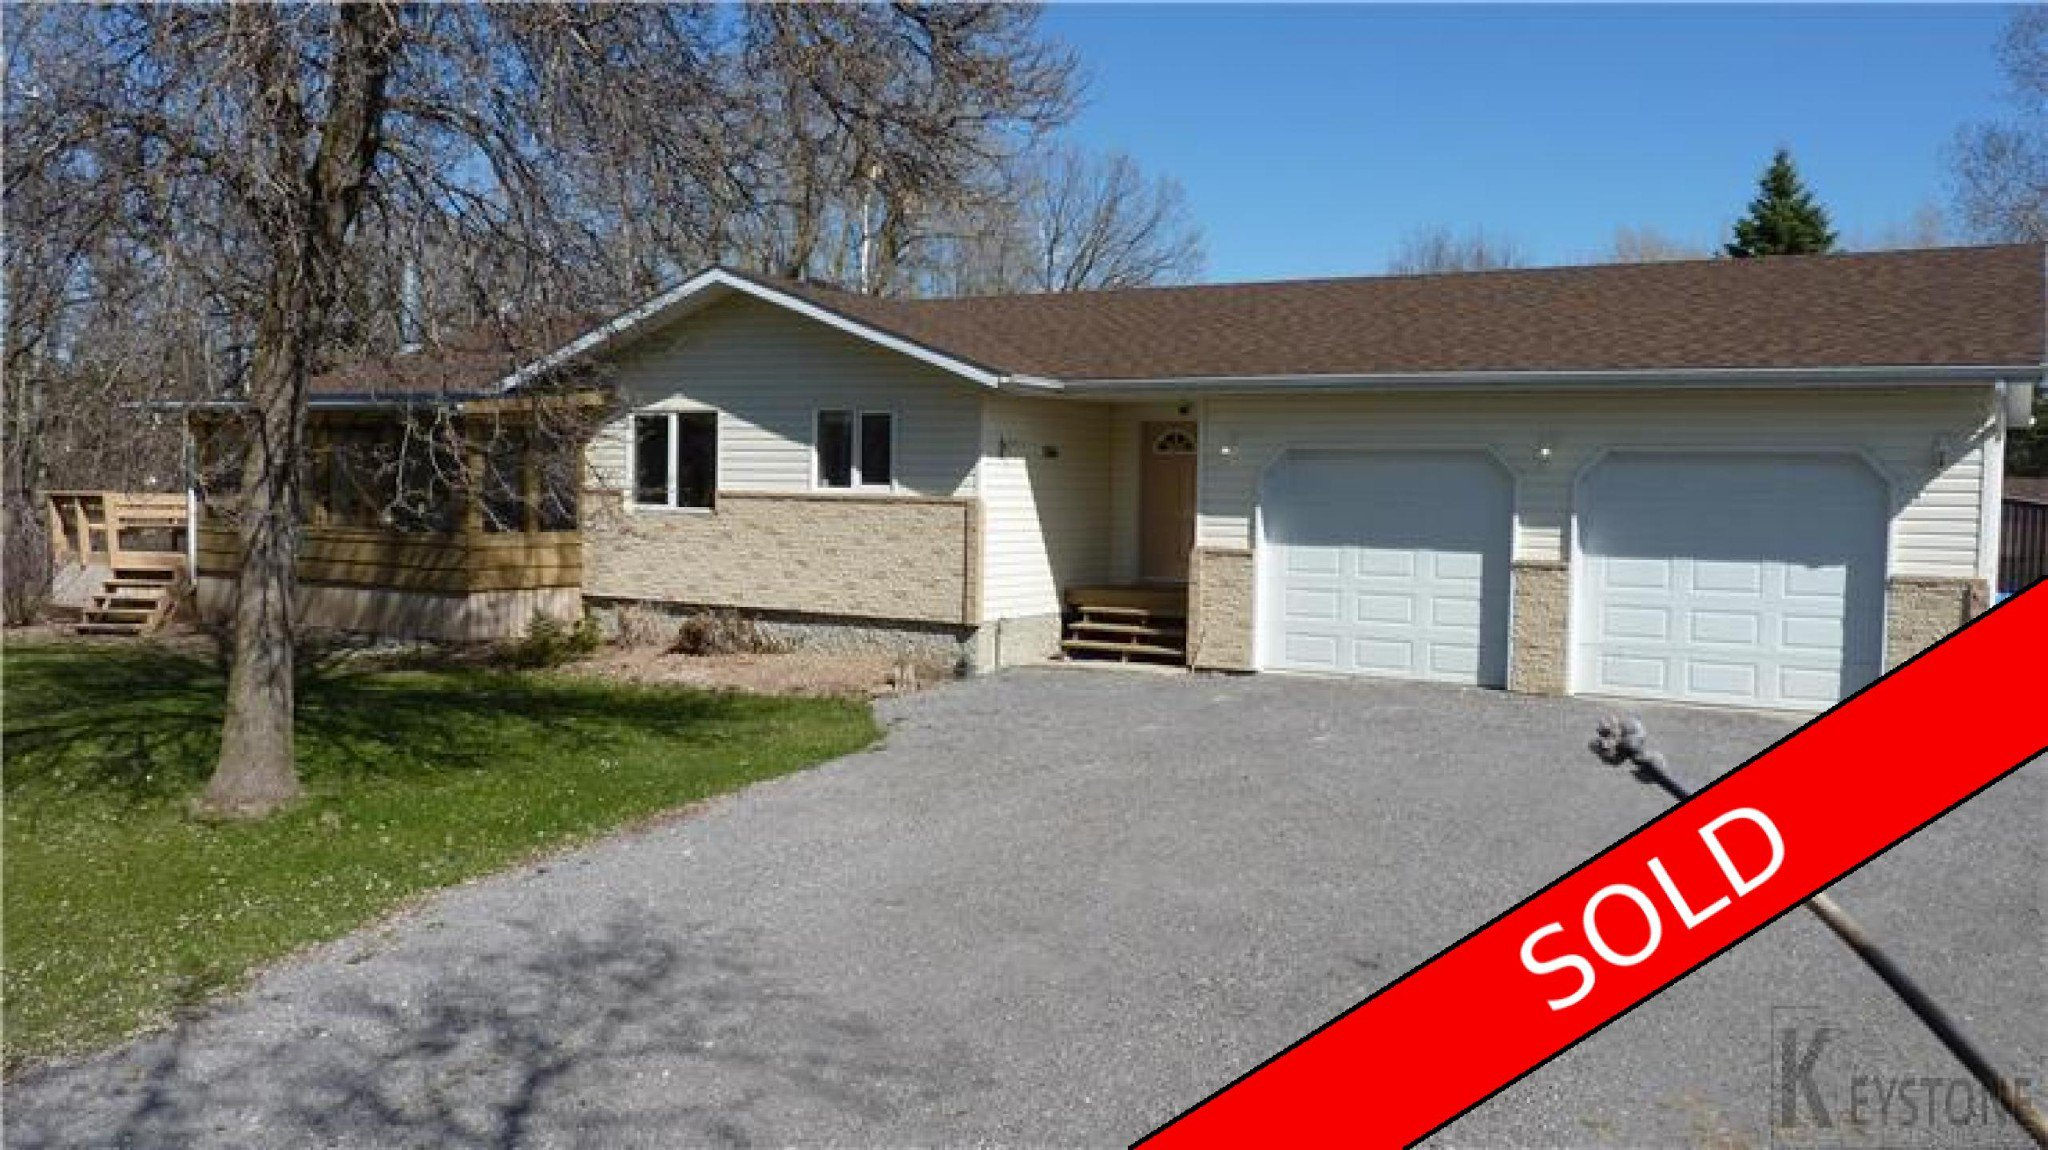 Main Photo: 1430 Breezy Point Road in St Andrews, MB R1A2A7: House for sale : MLS®# 1709949